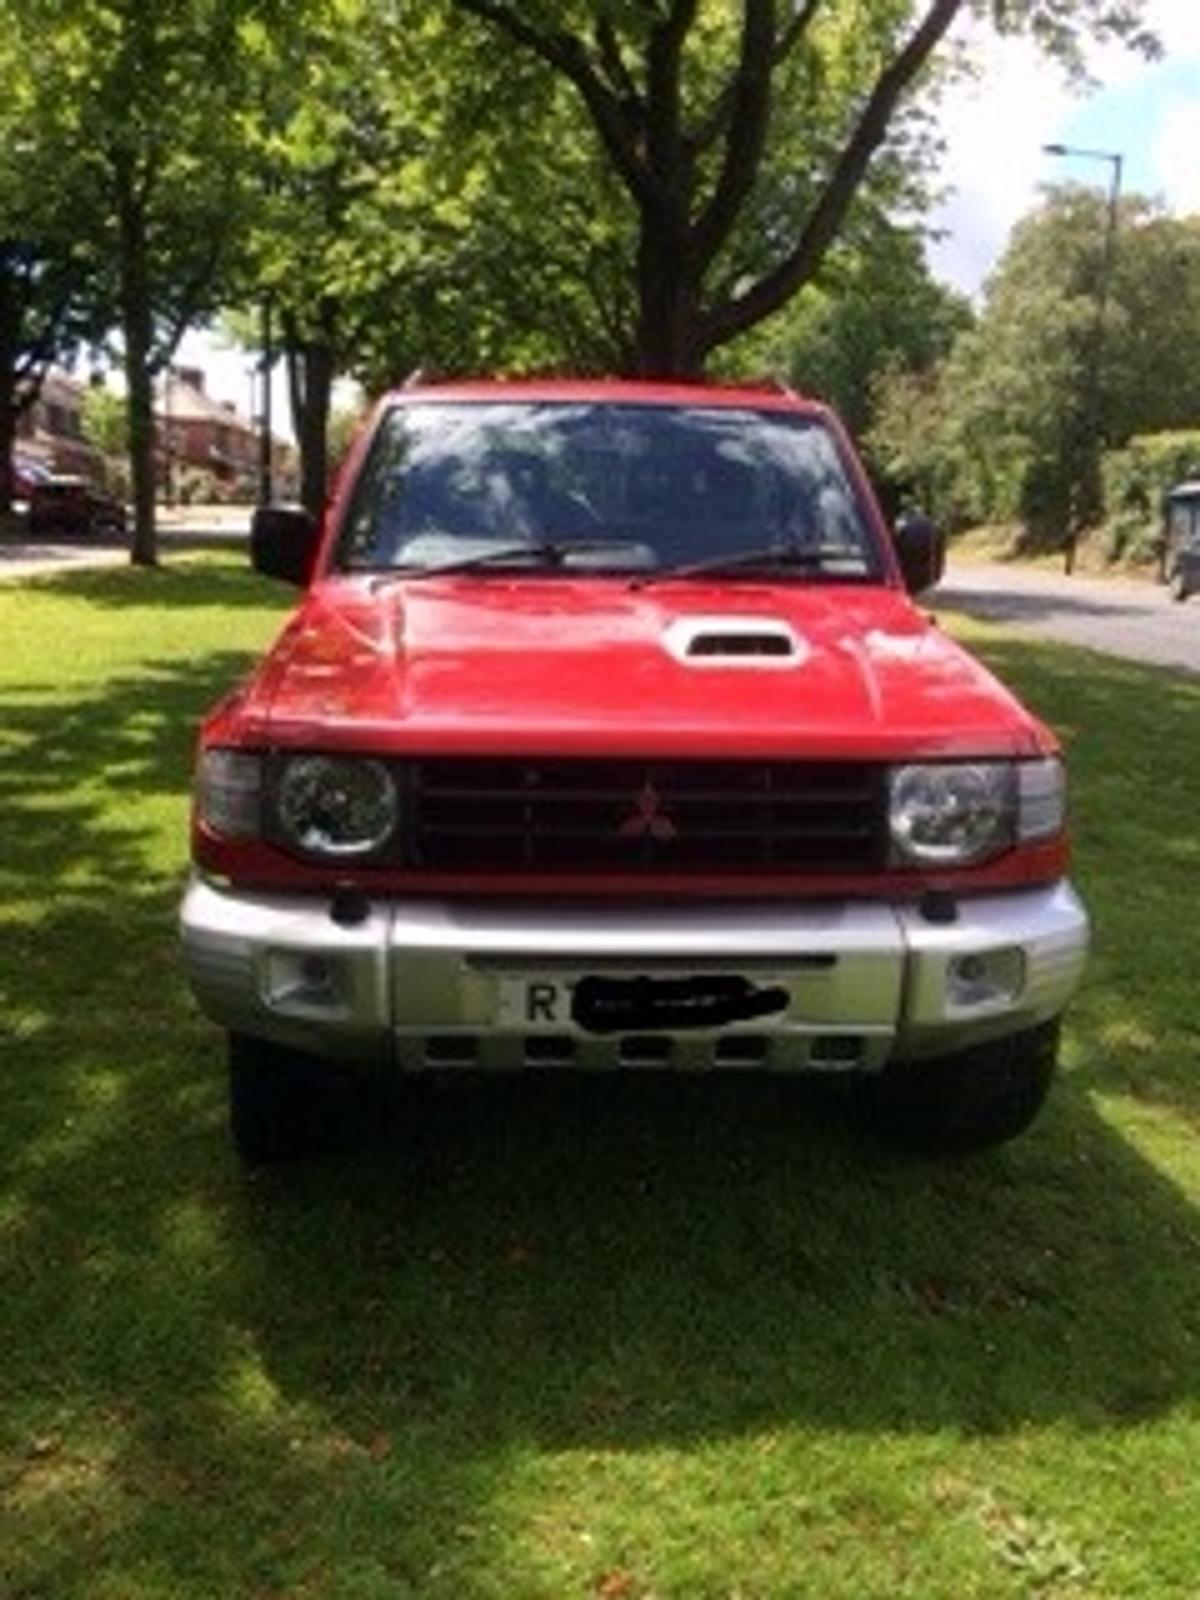 Bulbar comes with spotlights, no dents or damage, comes with fittings, came off shogun in picture